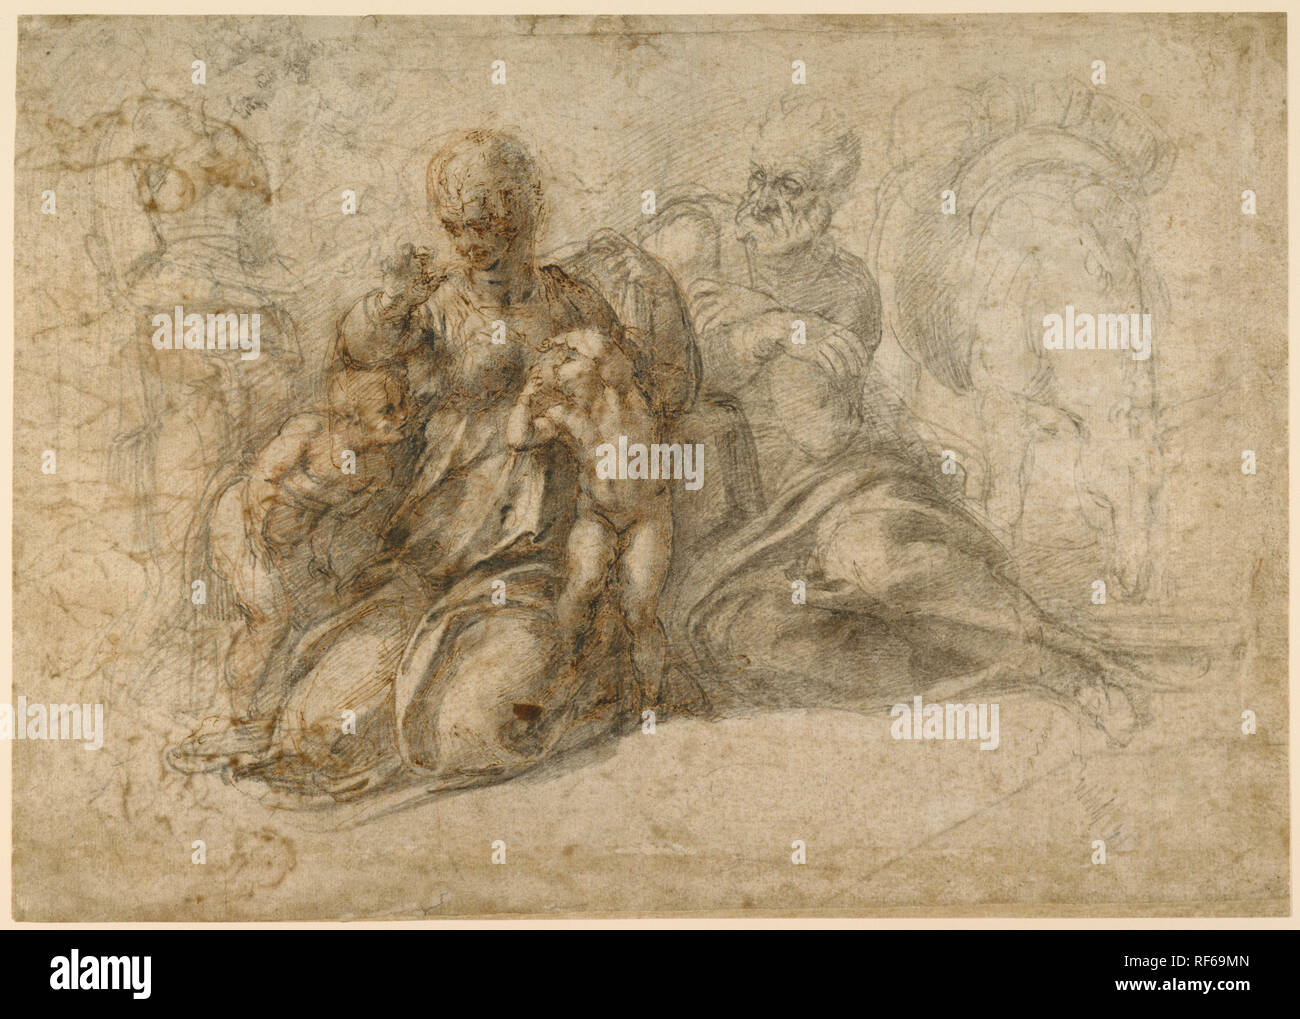 The Holy Family (recto); Amorous Putti (verso); Michelangelo Buonarroti (Italian, 1475 - 1564); Italy; about 1530; Black and red chalk with pen and brown ink over stylus (recto); Pen and black and brown ink (verso); 27.9 x 39.4 cm (11 x 15 1/2 in.); 93.GB.51 Stock Photo